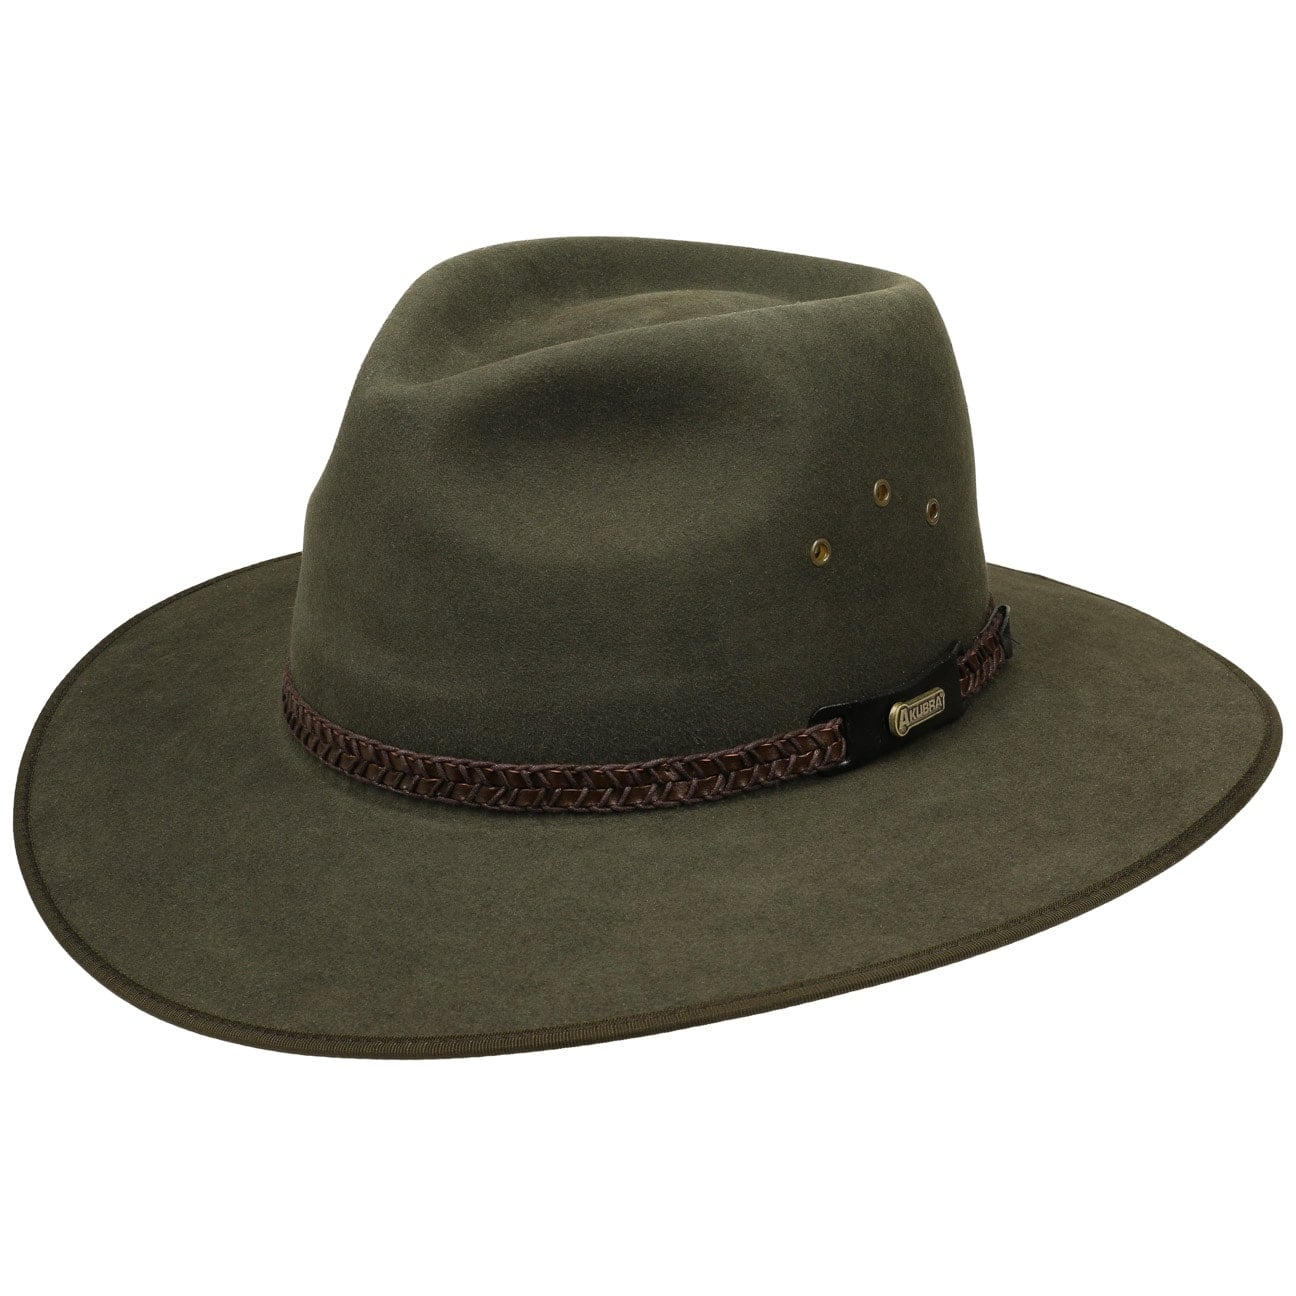 Sombrero Fieltro Pelo Tablelands by Akubra